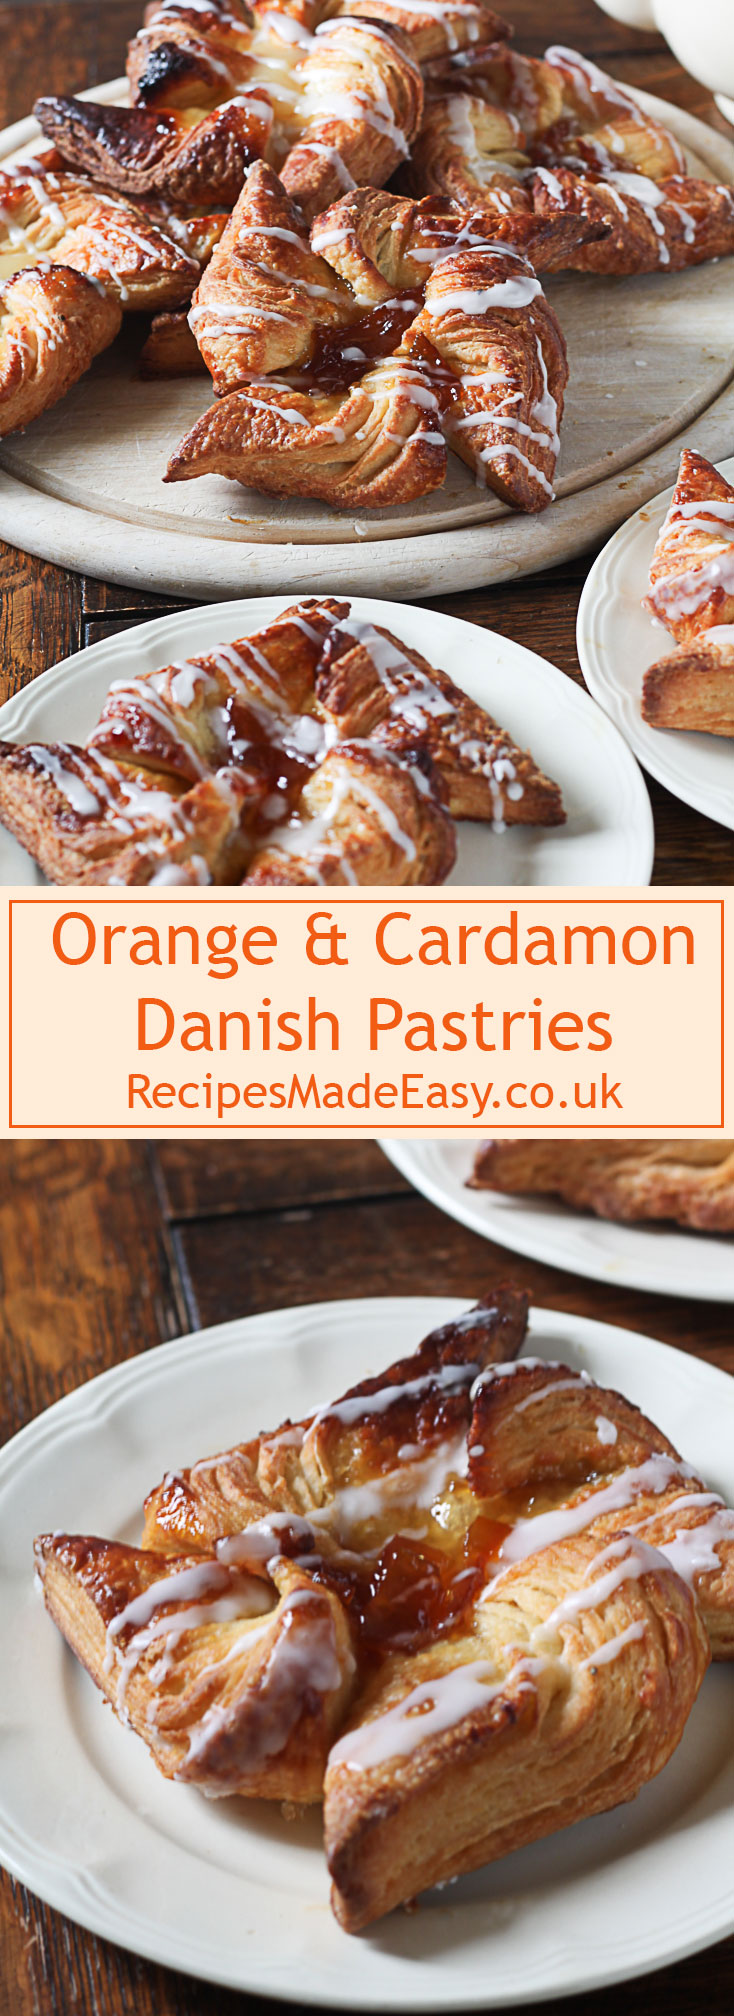 orange-and-cardamon-danish-pastries